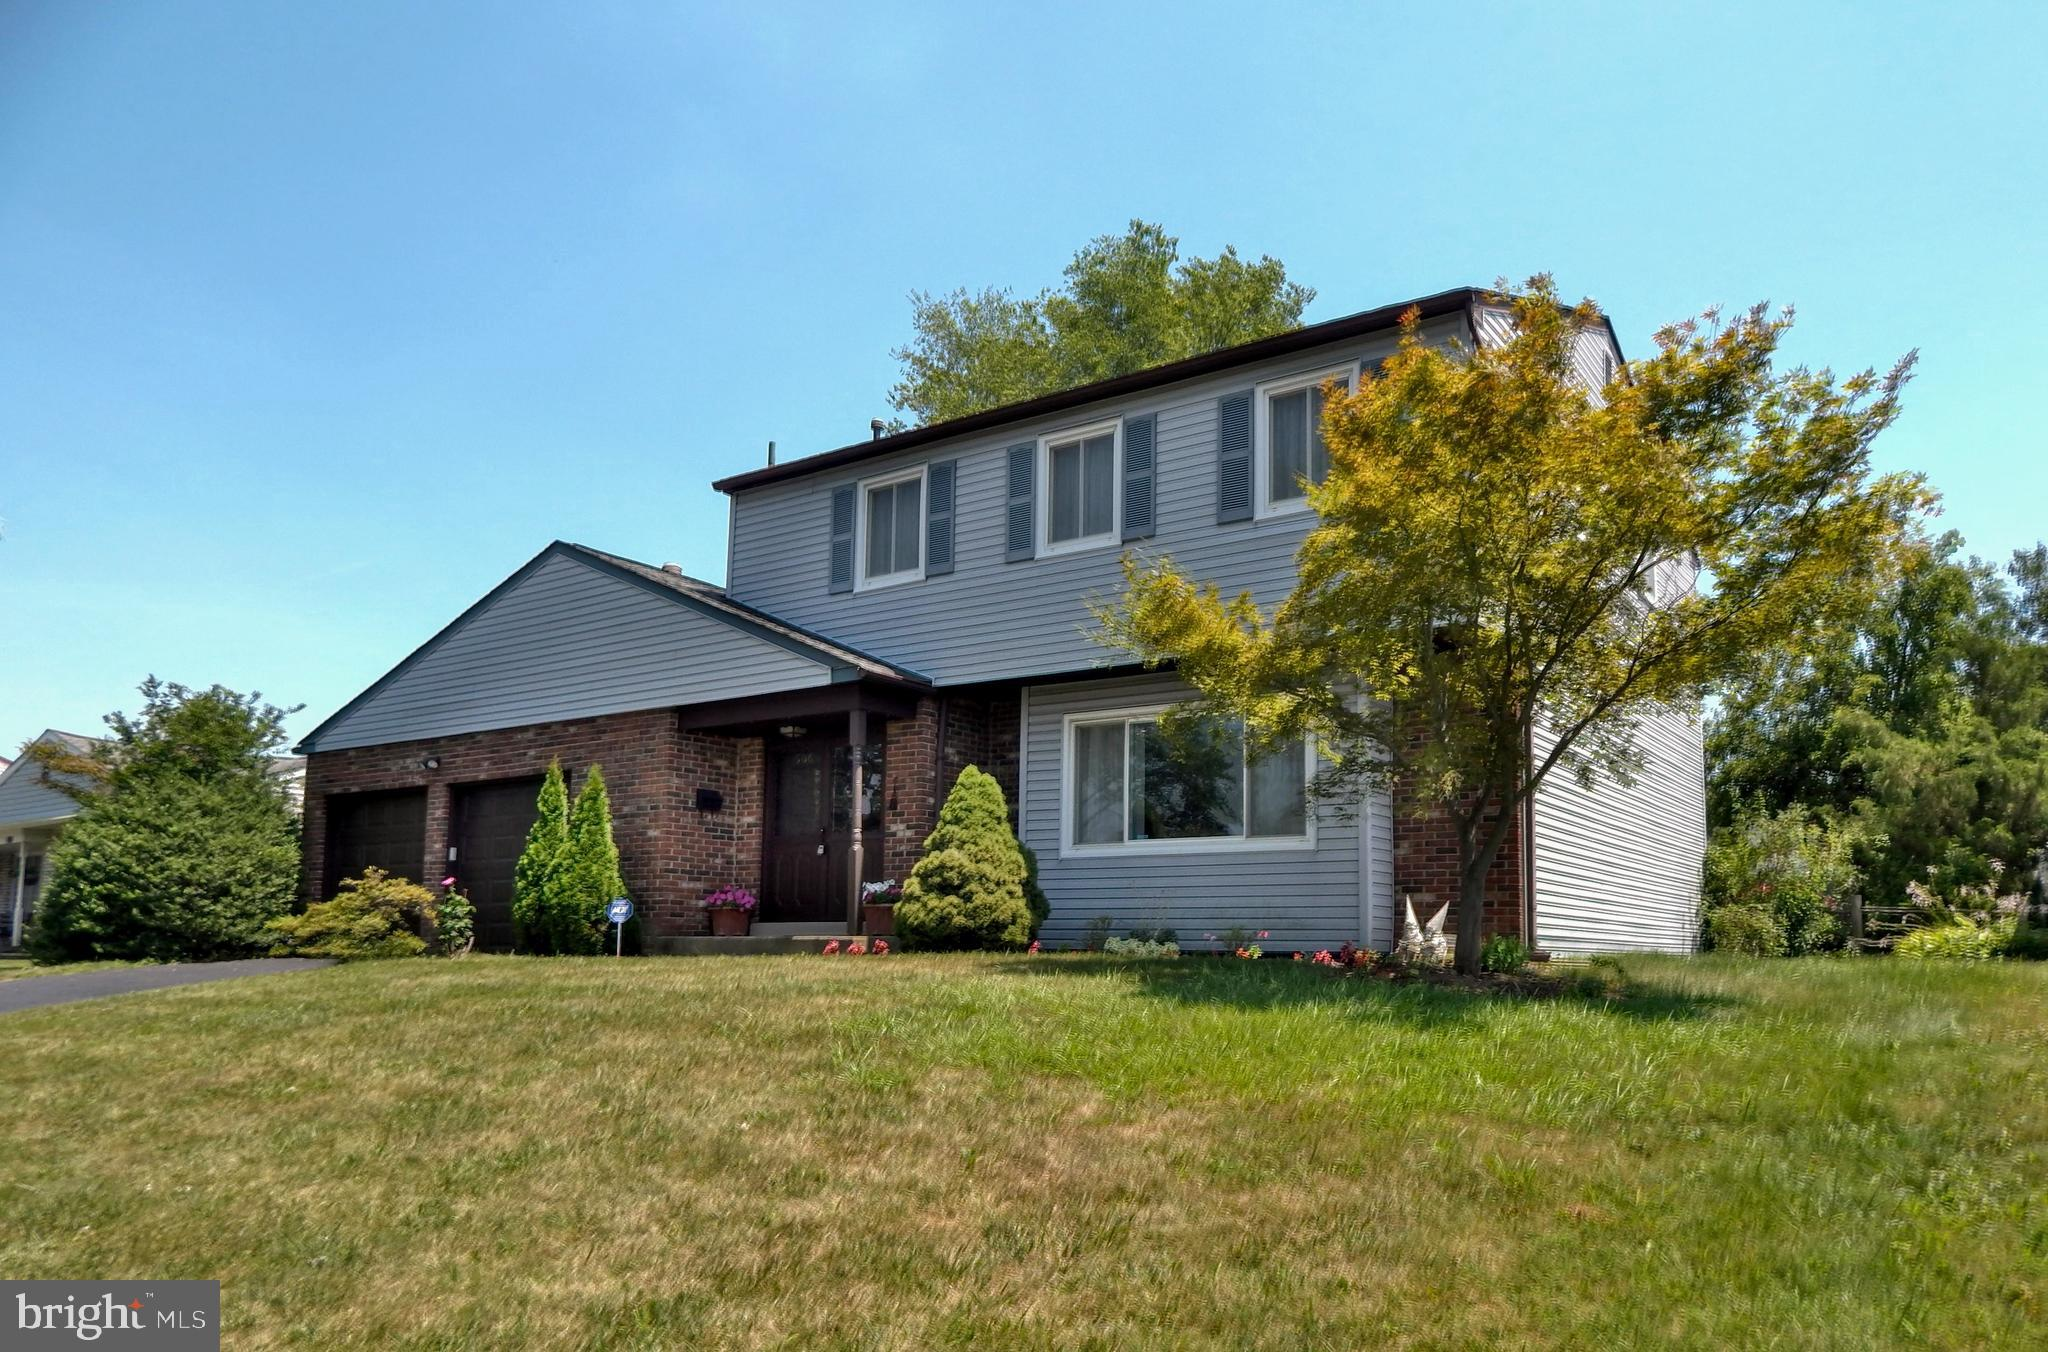 506 BARBARA ROAD, FAIRLESS HILLS, PA 19030